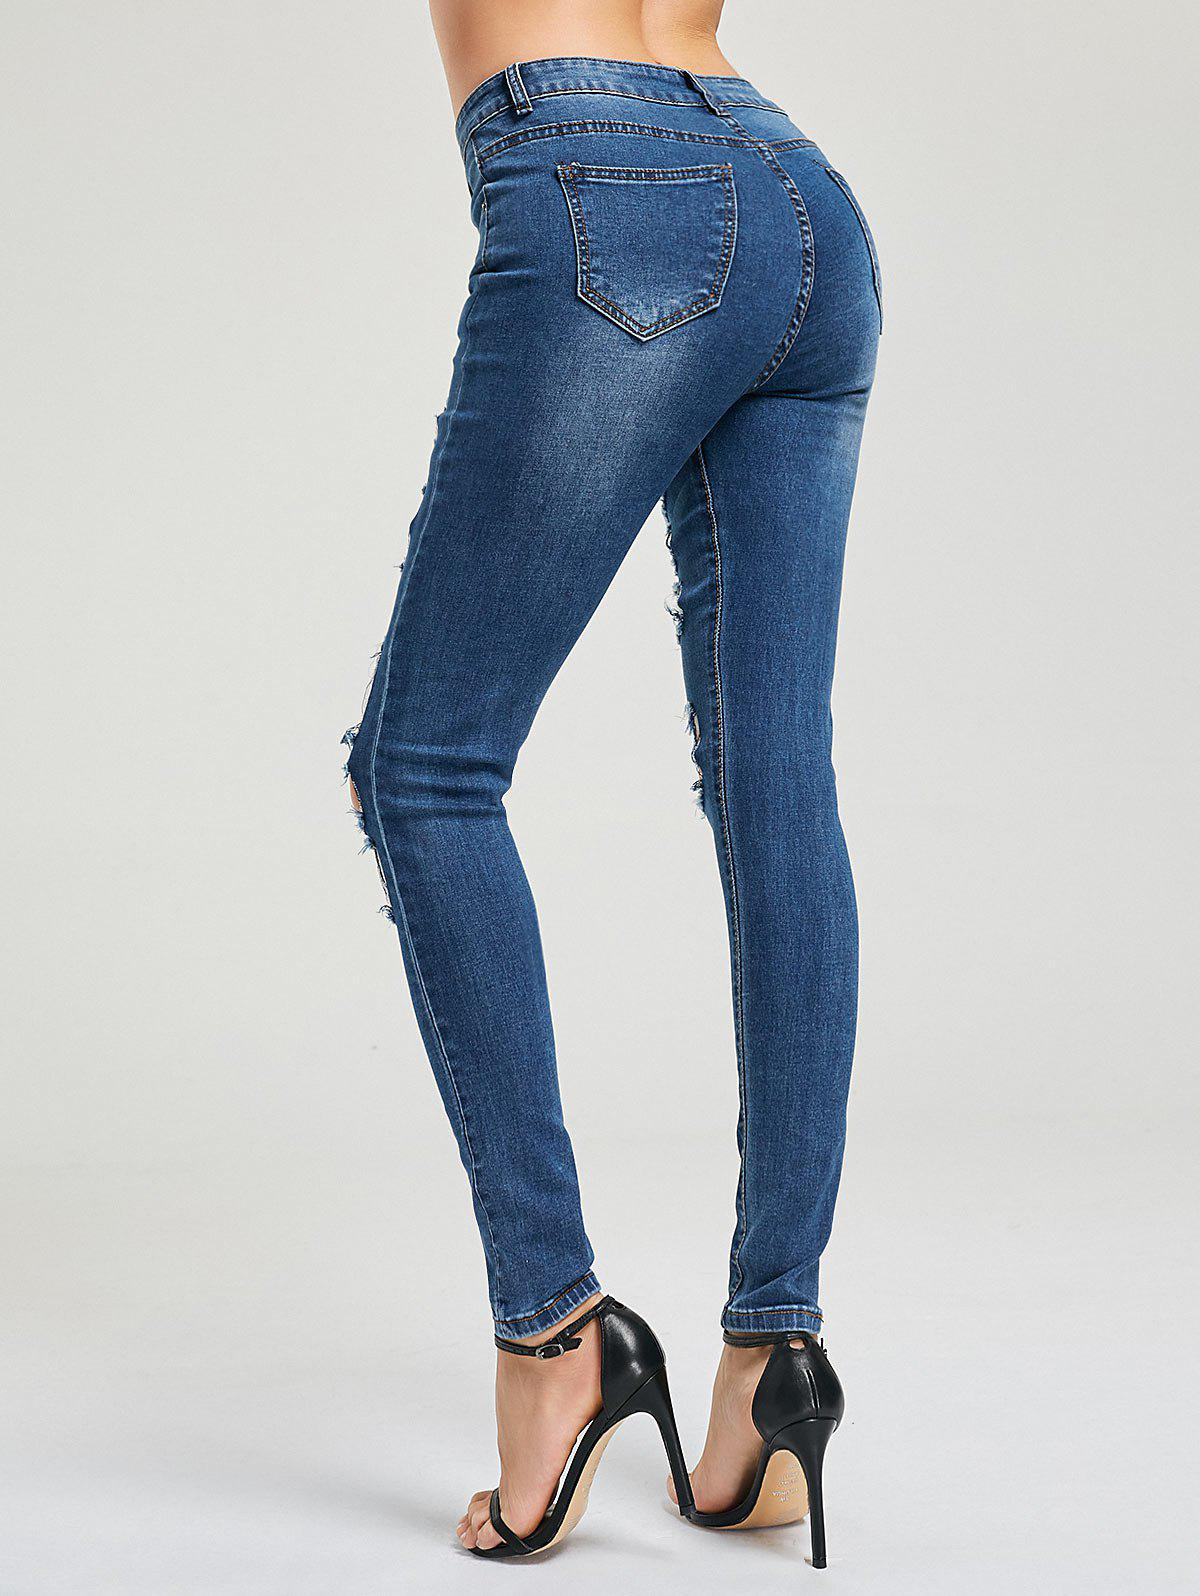 Cat's Whisker Ripped Jeans - BLUE M